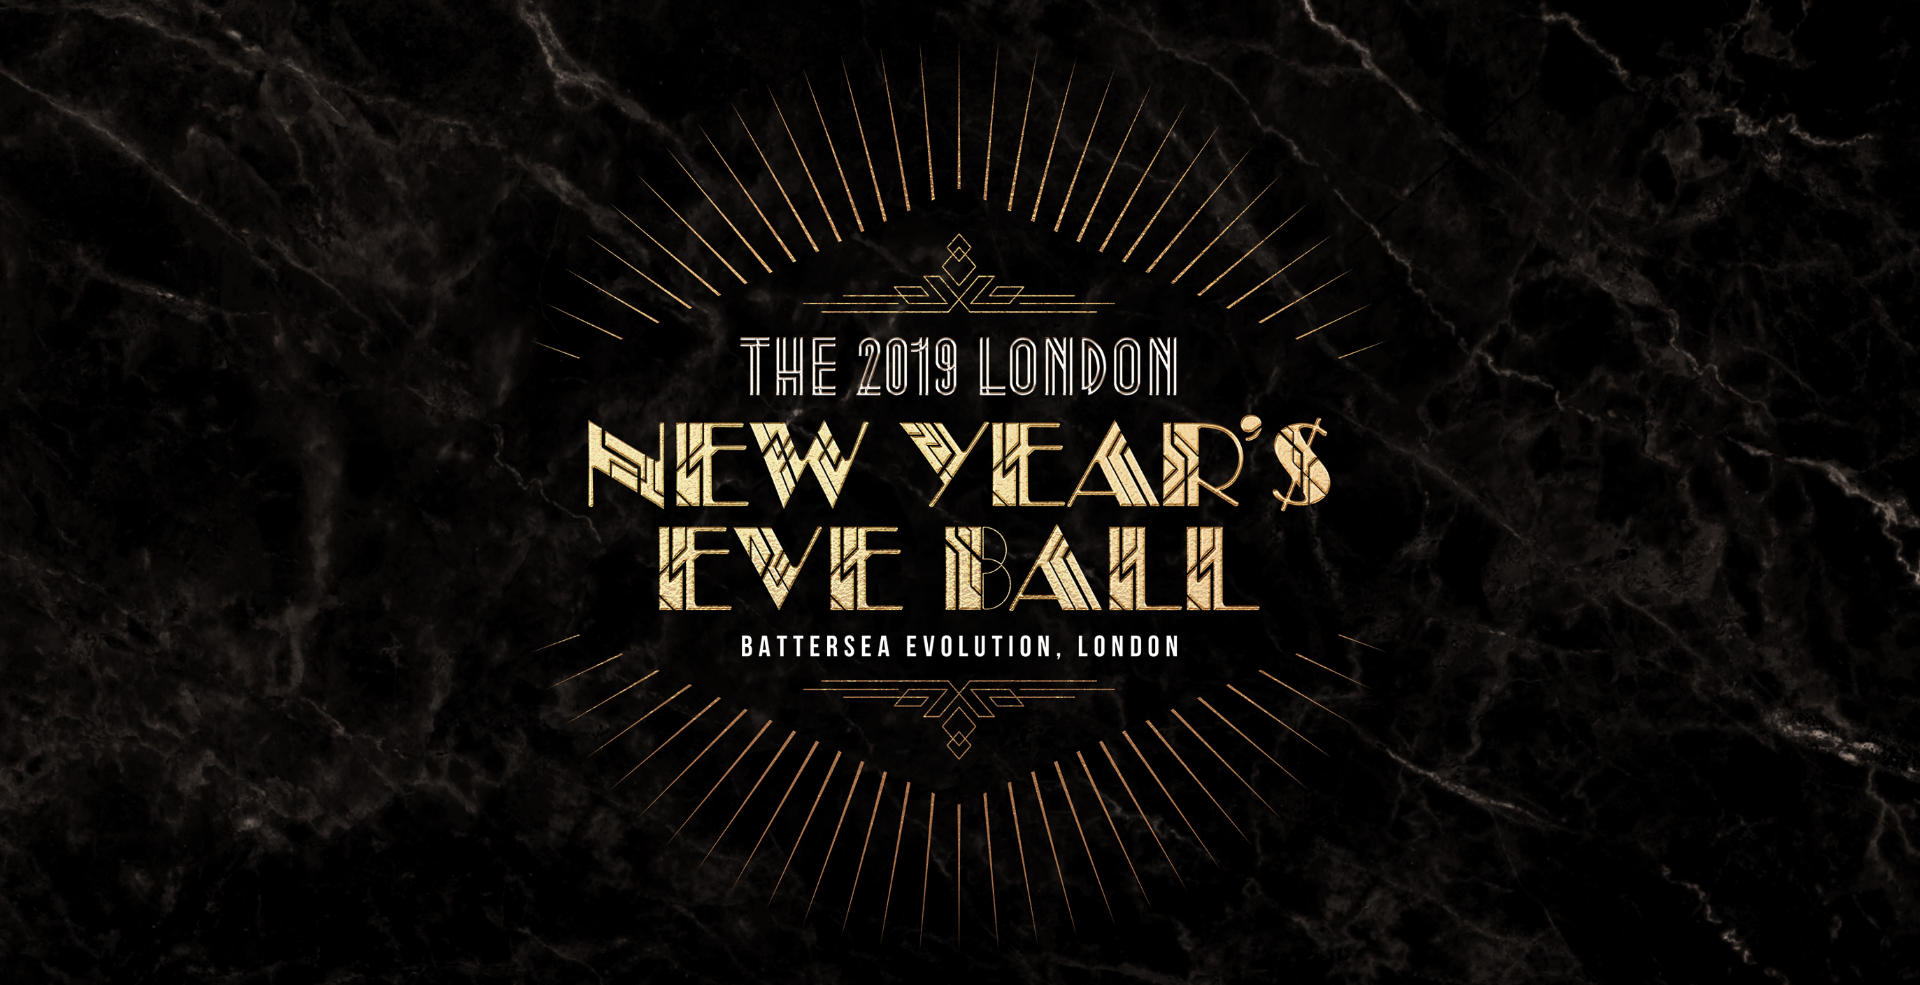 The London New Year's Eve Ball